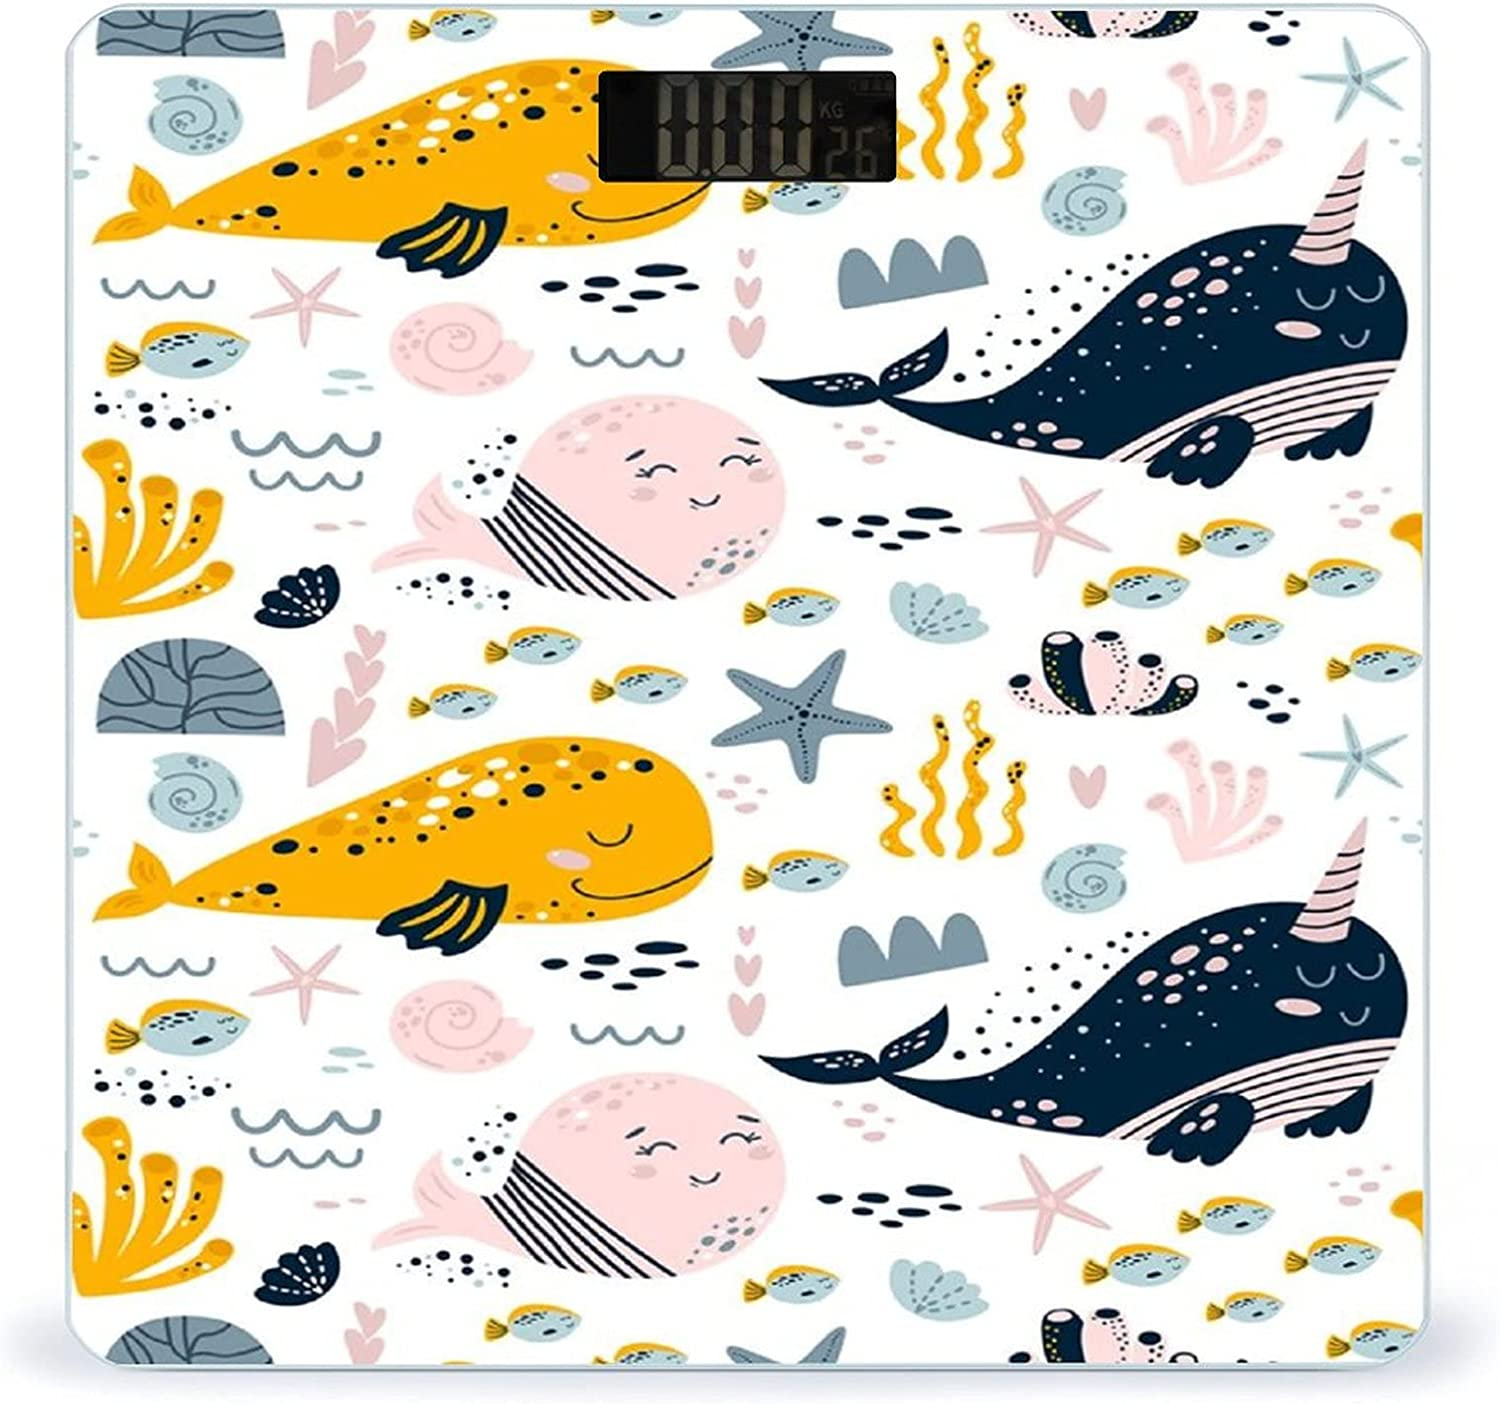 CHUFZSD Cute Animal Baby 2021 model Whale Smart 67% OFF of fixed price Fitness Accurate Highly Sca